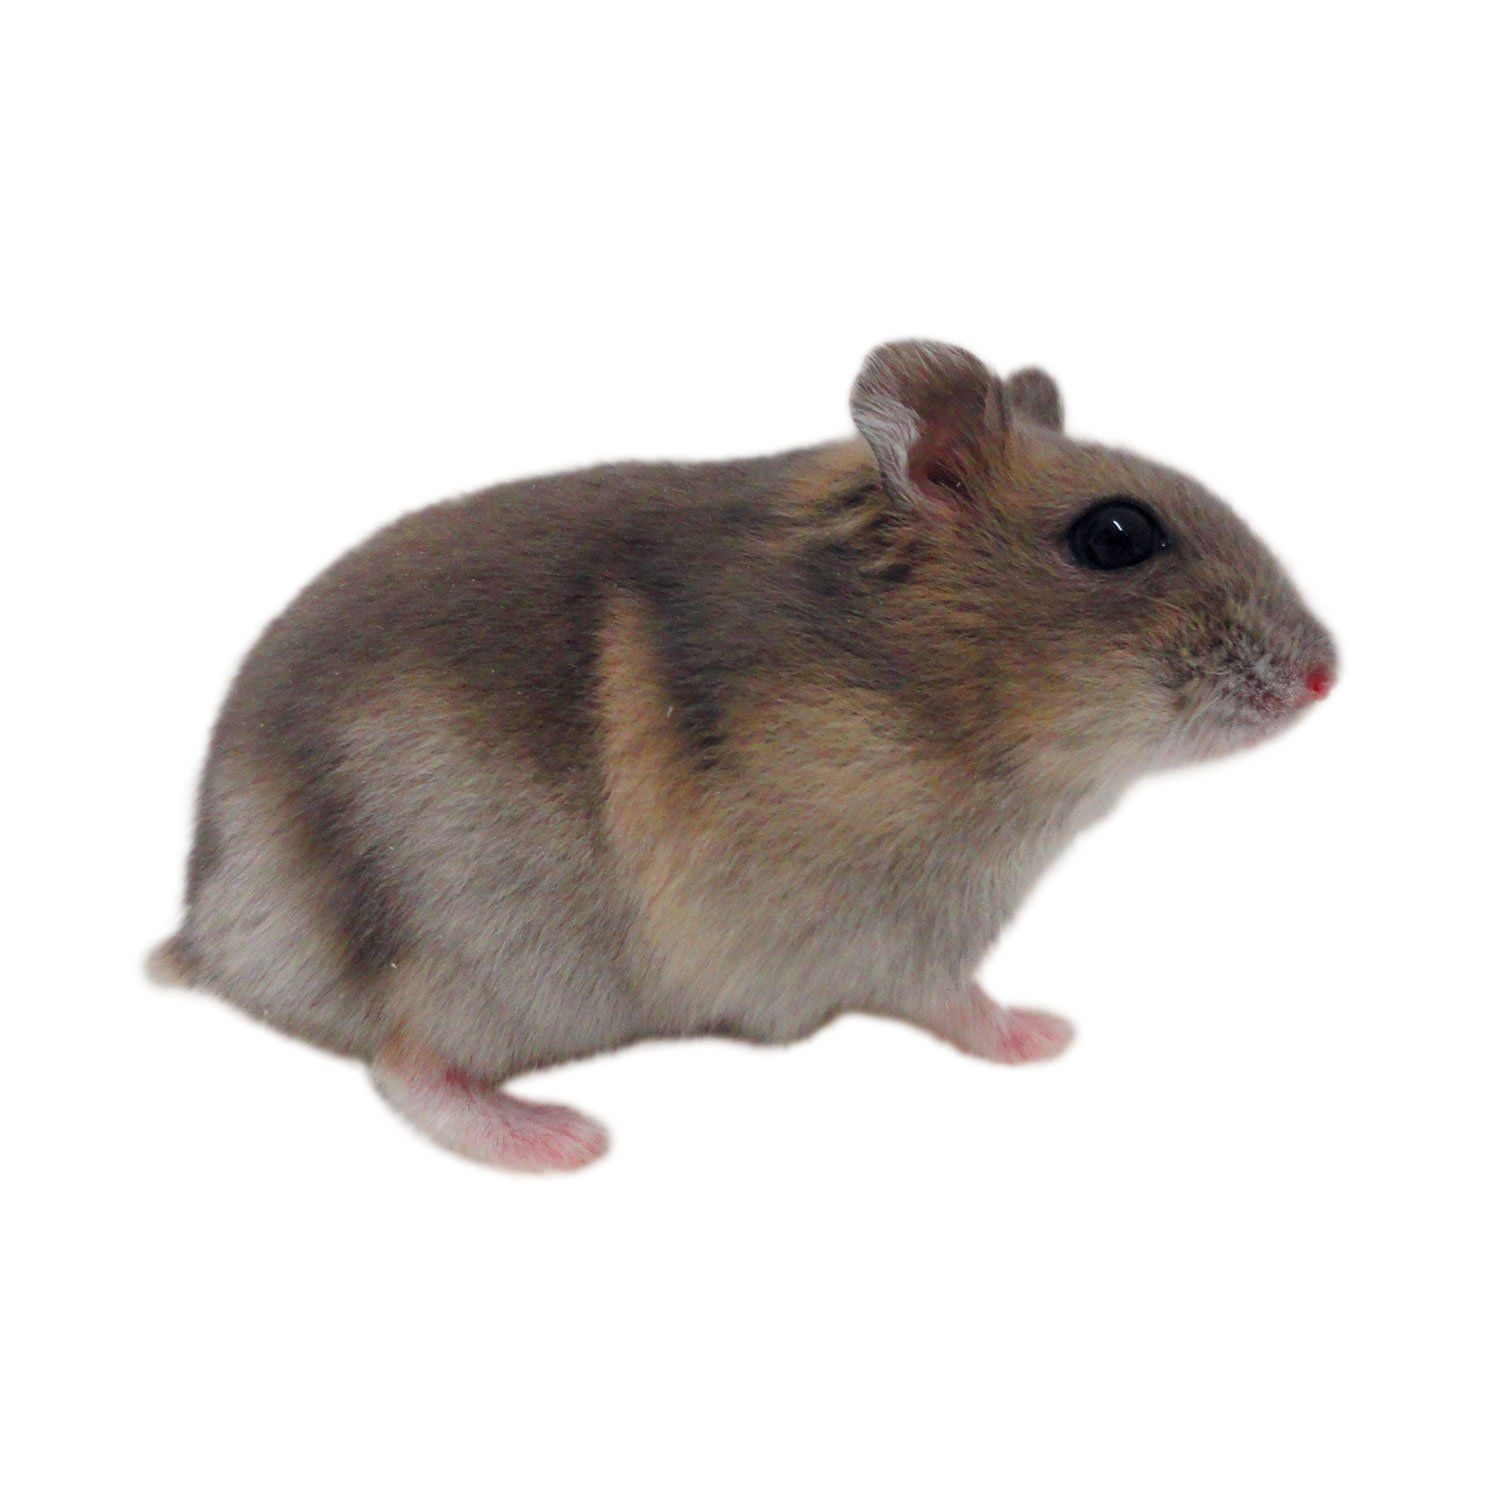 petsmart hamsters prices - HD 1500×1500